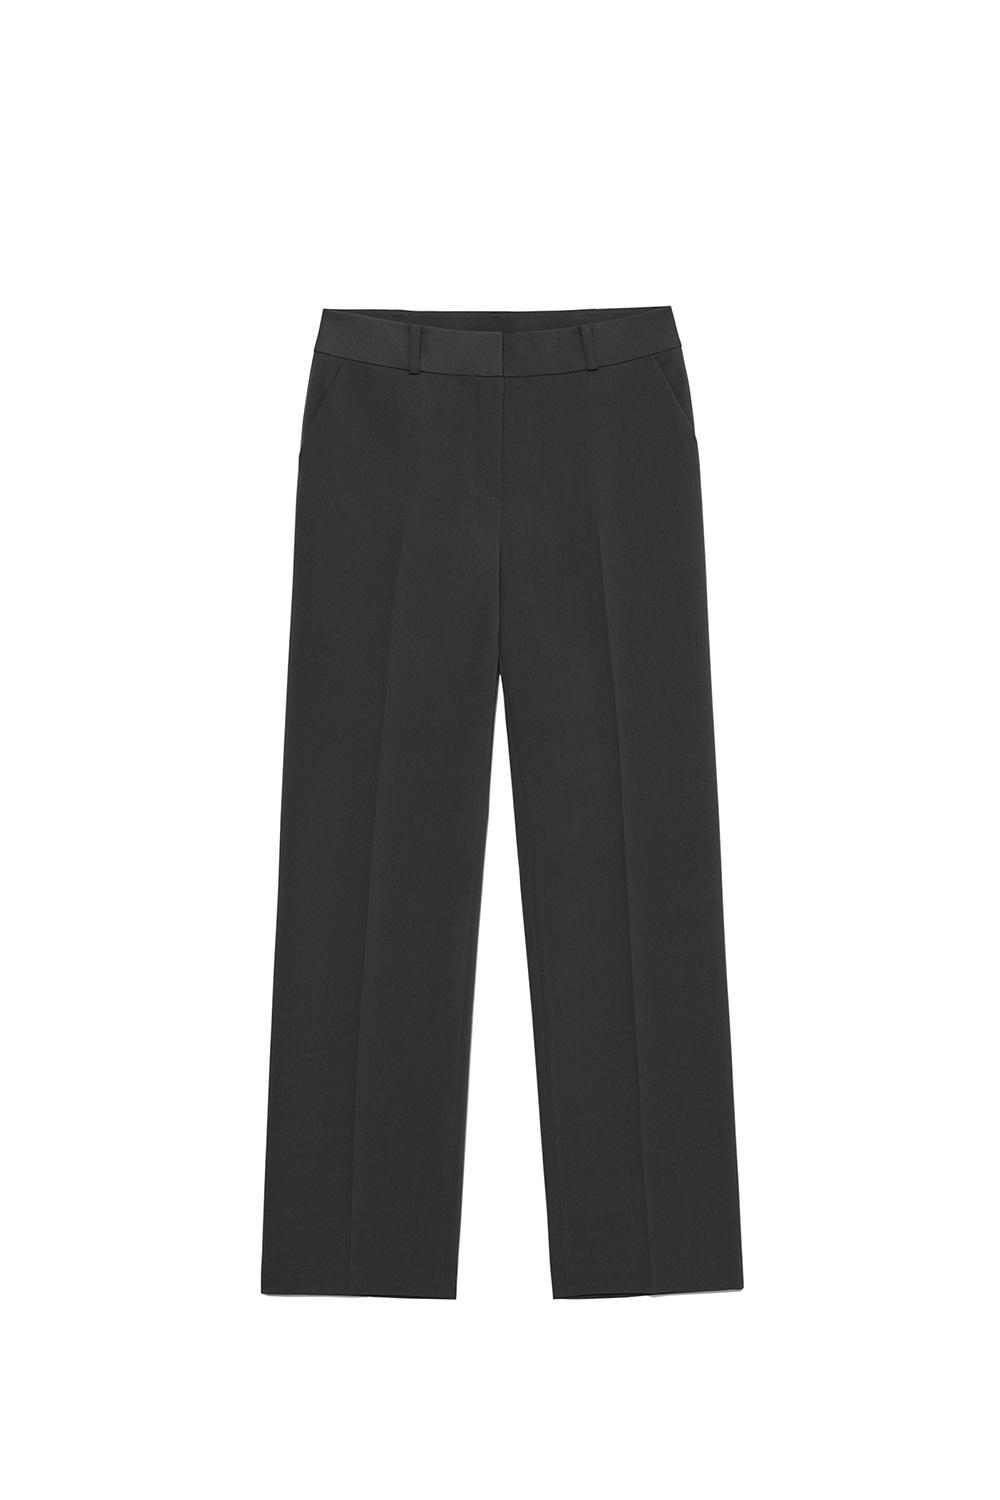 Long Slacks Women [Grey]